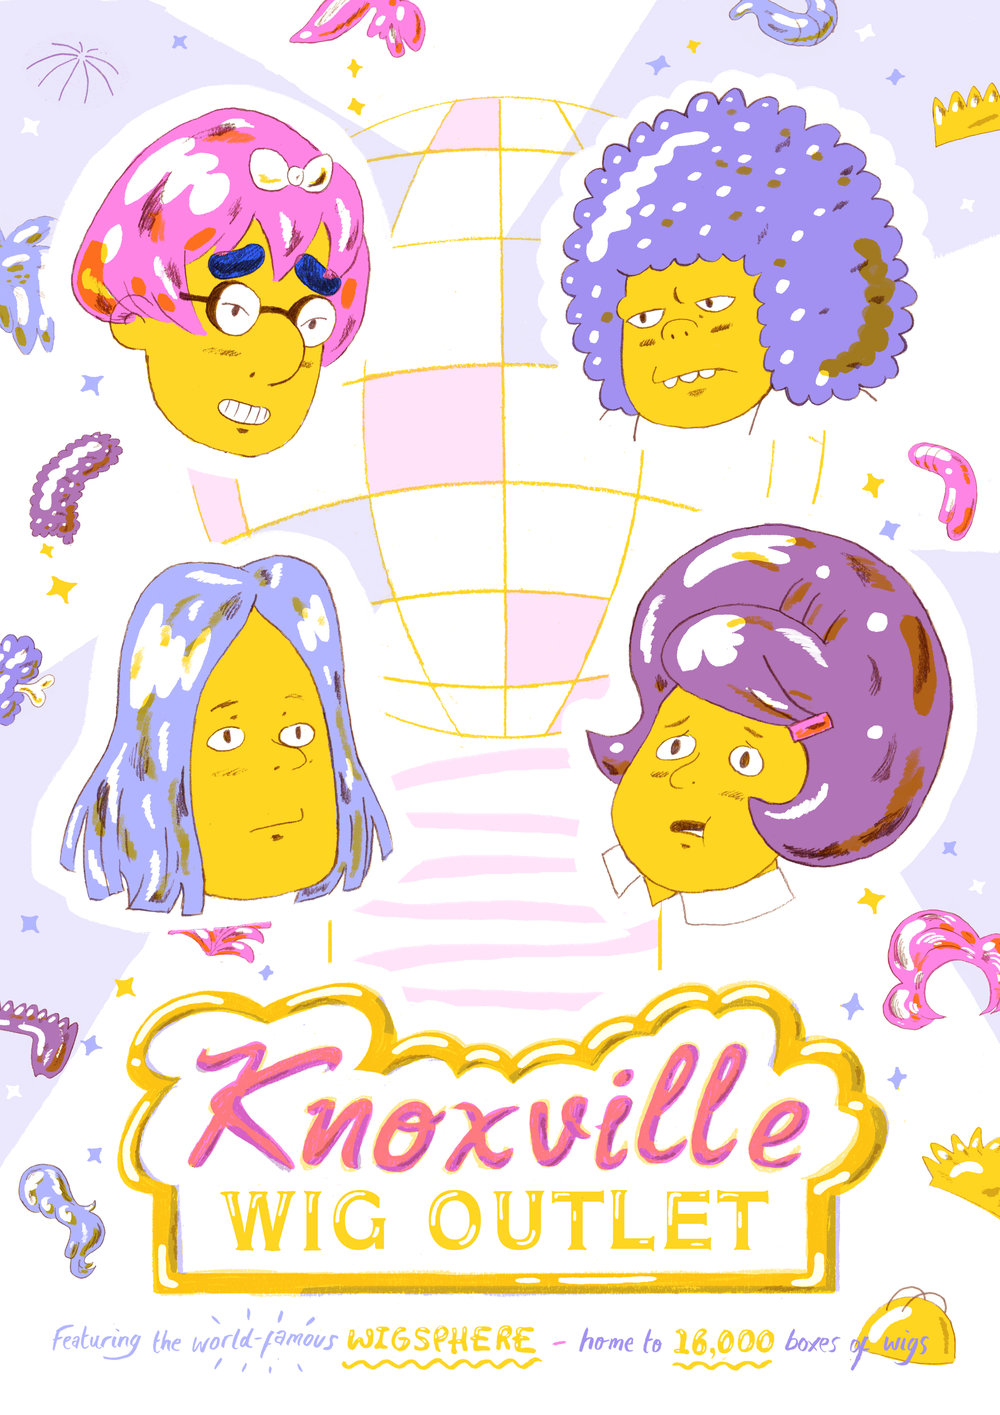 'Knoxville Wig Outlet', 2017. Piece for MMM... Culture, Bristol.